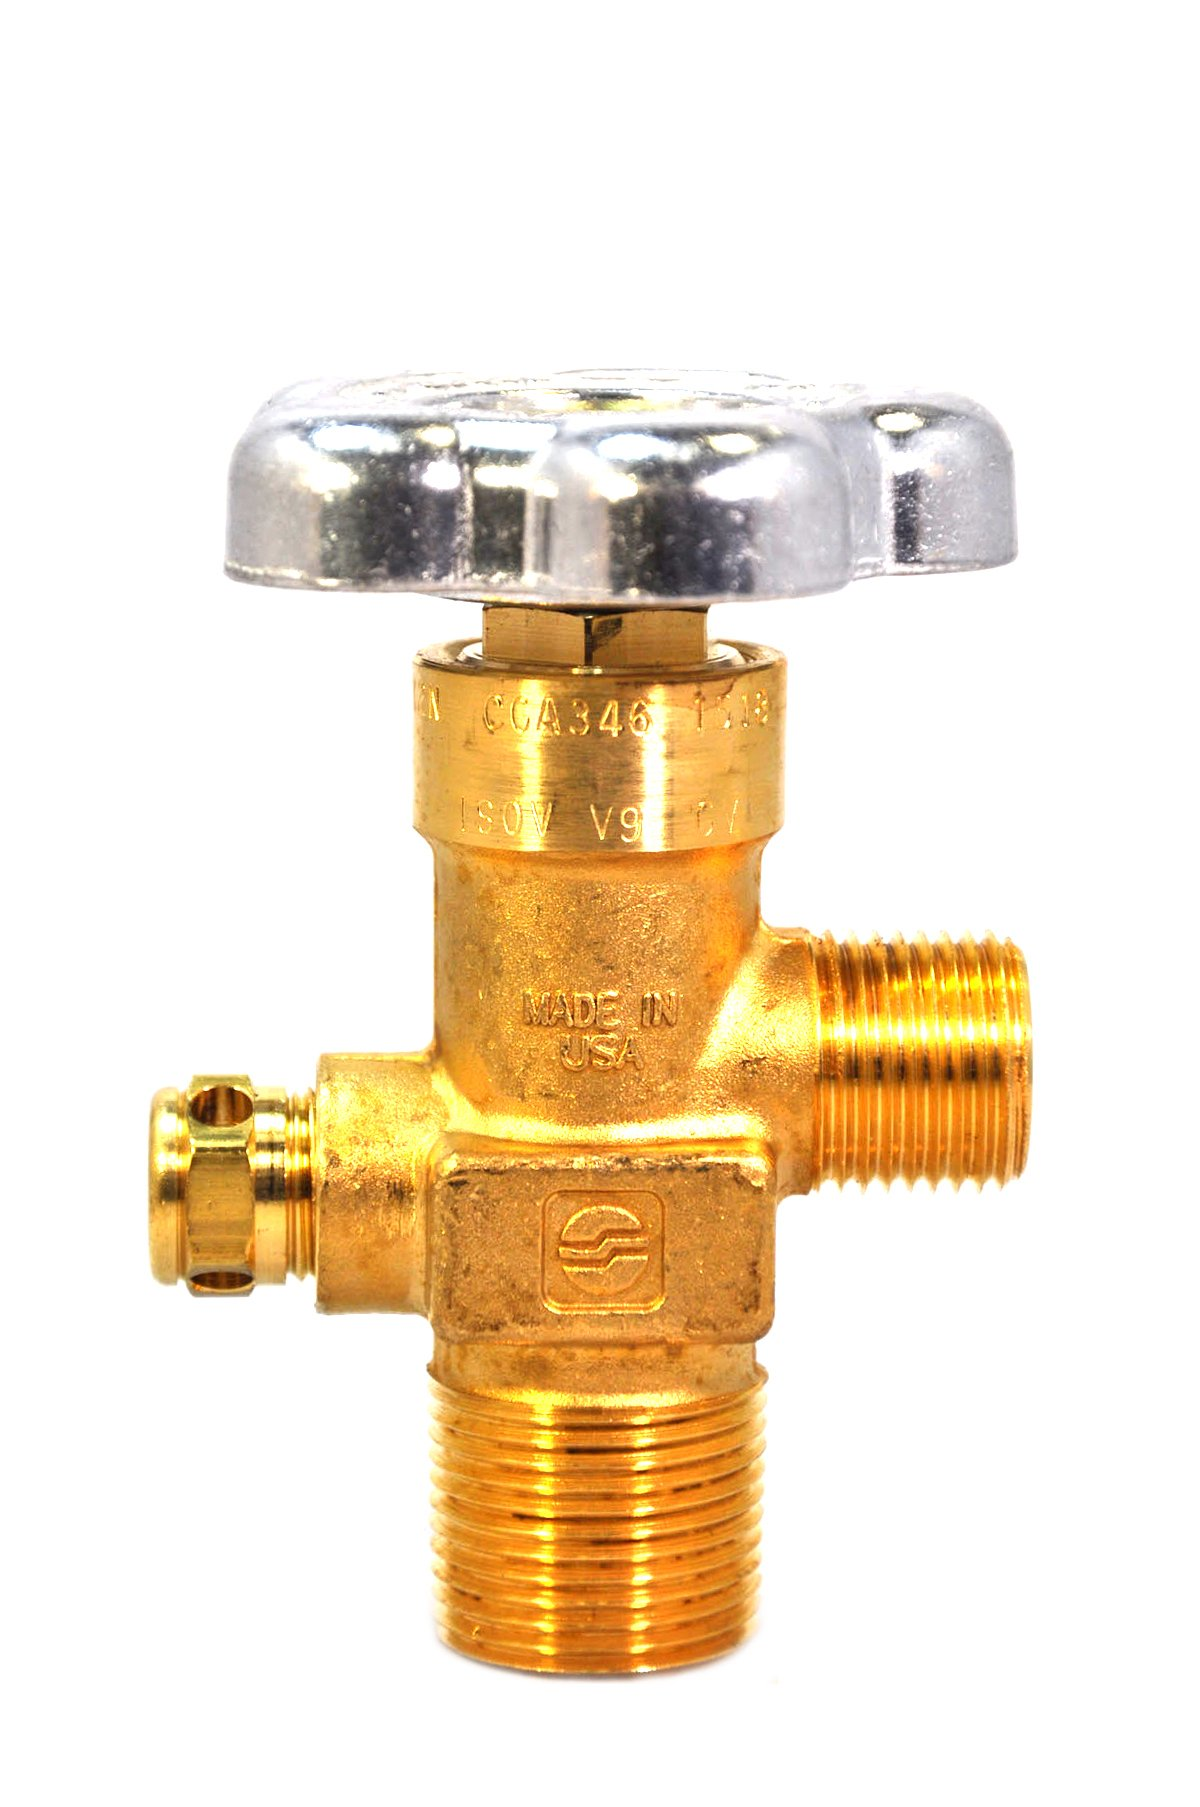 Sherwood Compressed Gas Global Valve CGA 346 4000 PSI 3/4NGT Heavy-Duty Forged Brass Body (GV34661-38)